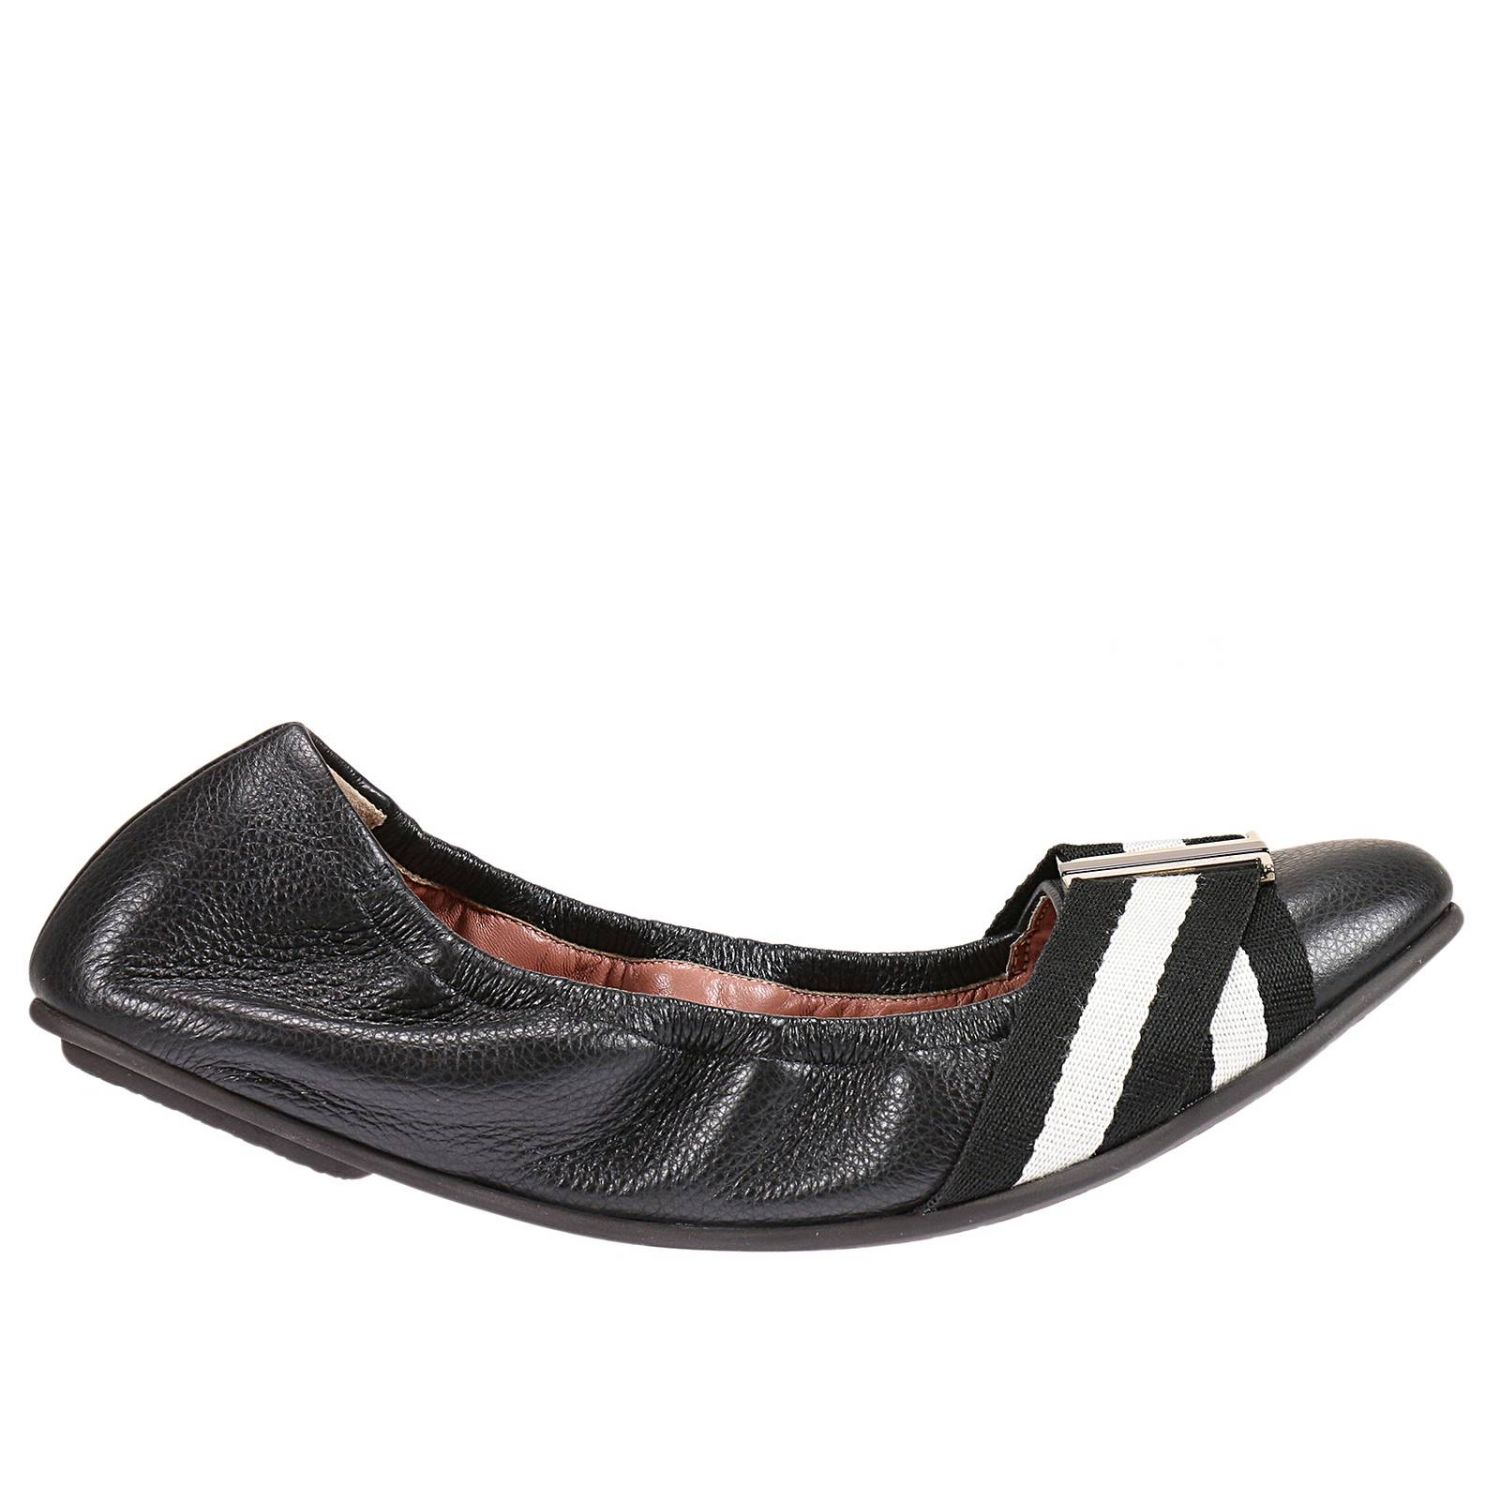 bally ballet flats shoes in black lyst